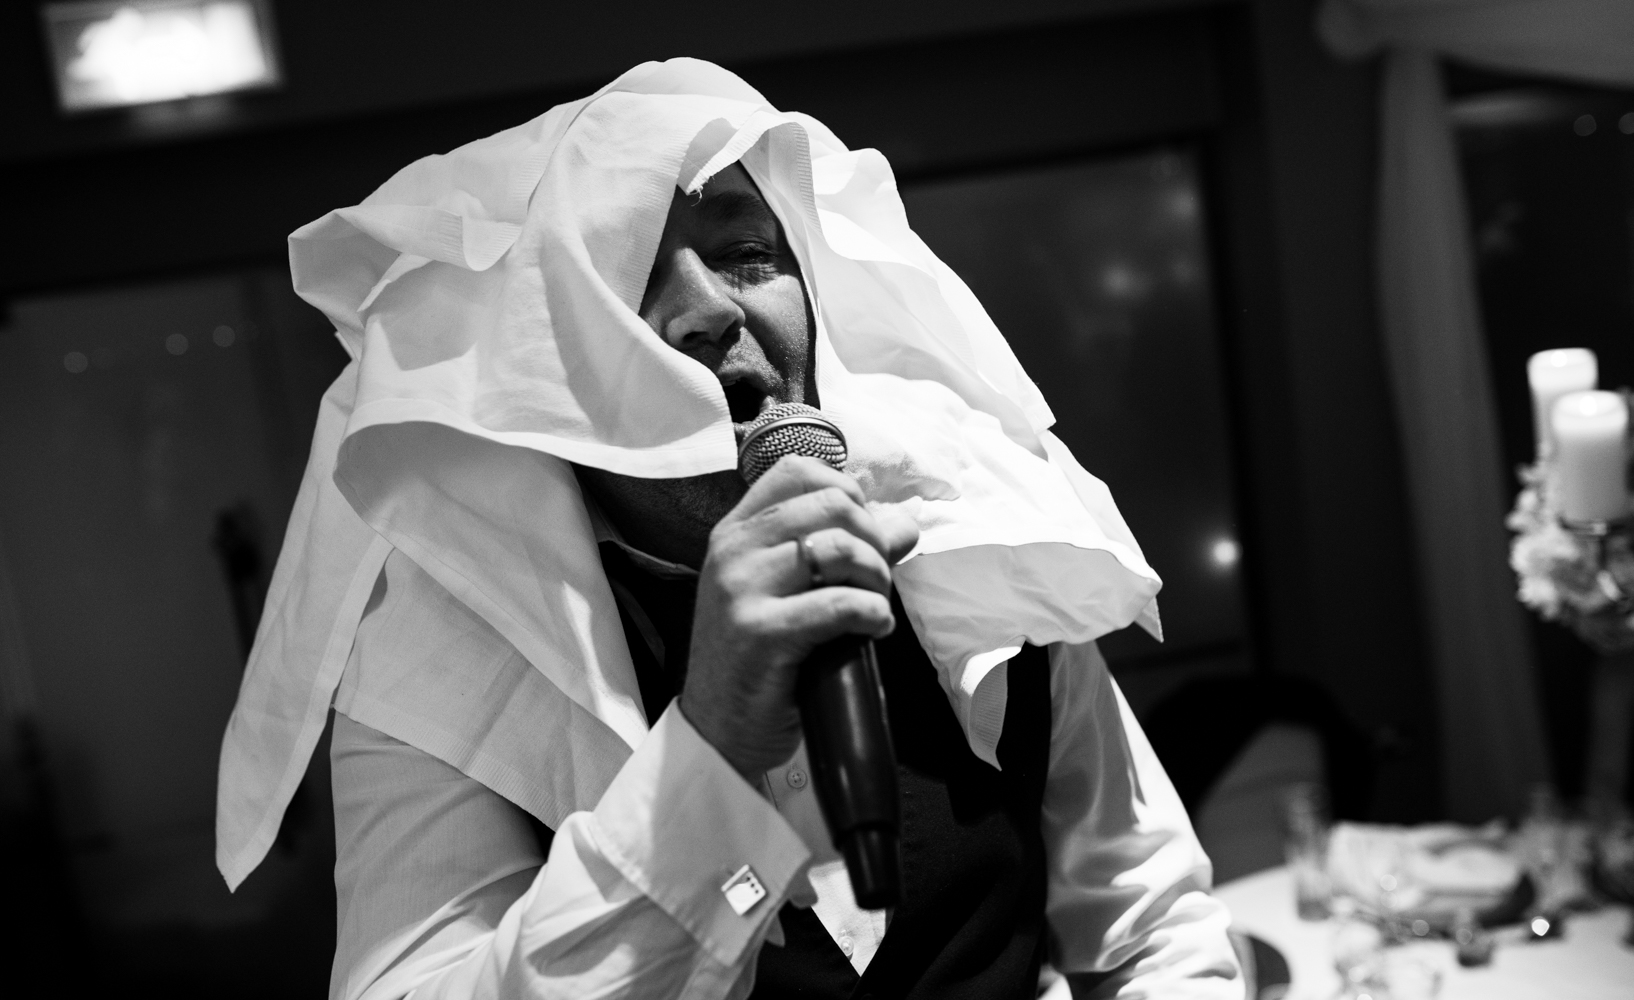 Black and white images of one of singing waiters with his head covered in table napkins